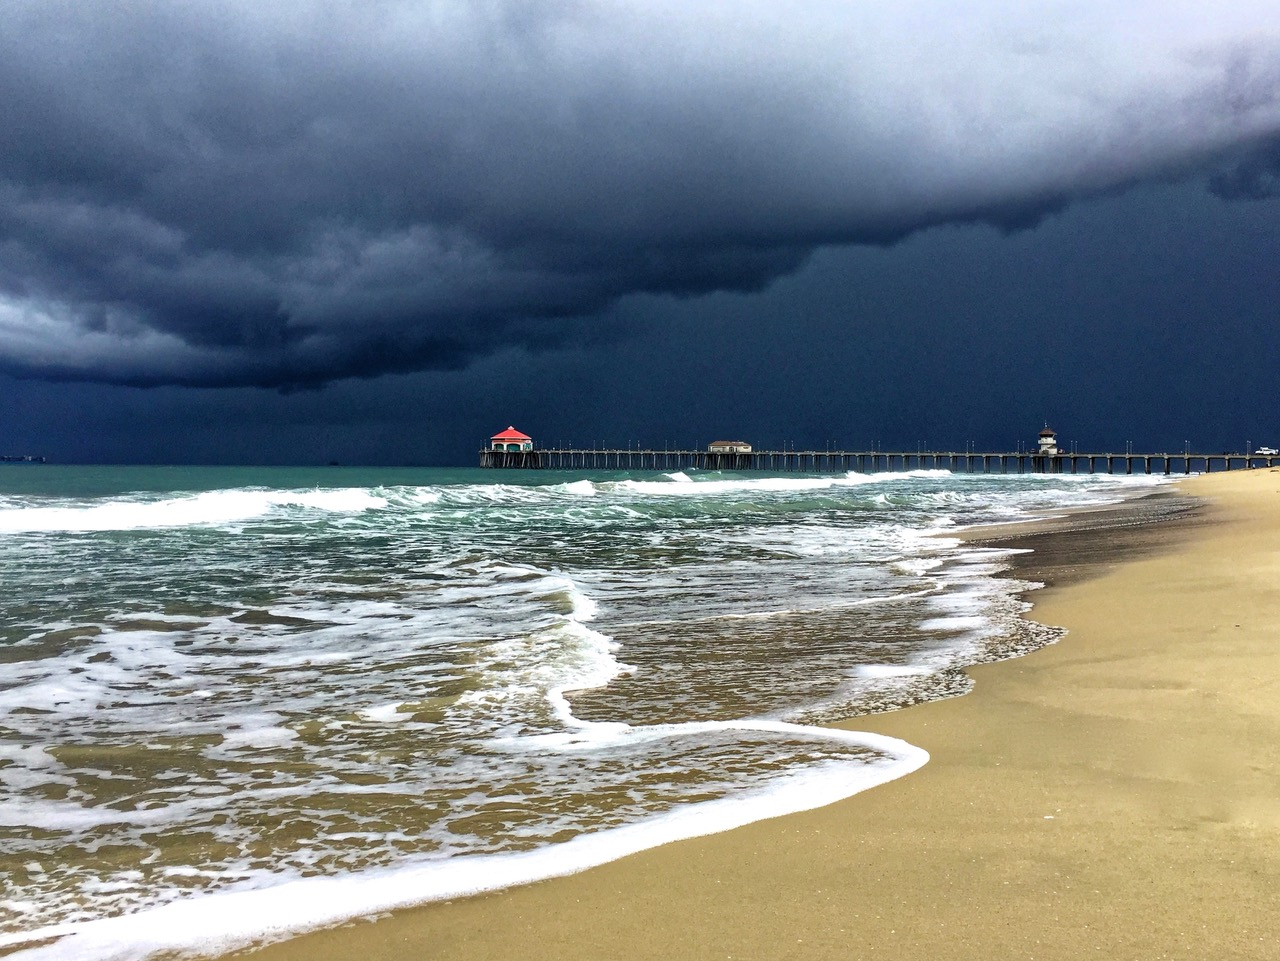 Just minutes before hell broke loose in Huntington Beach, California